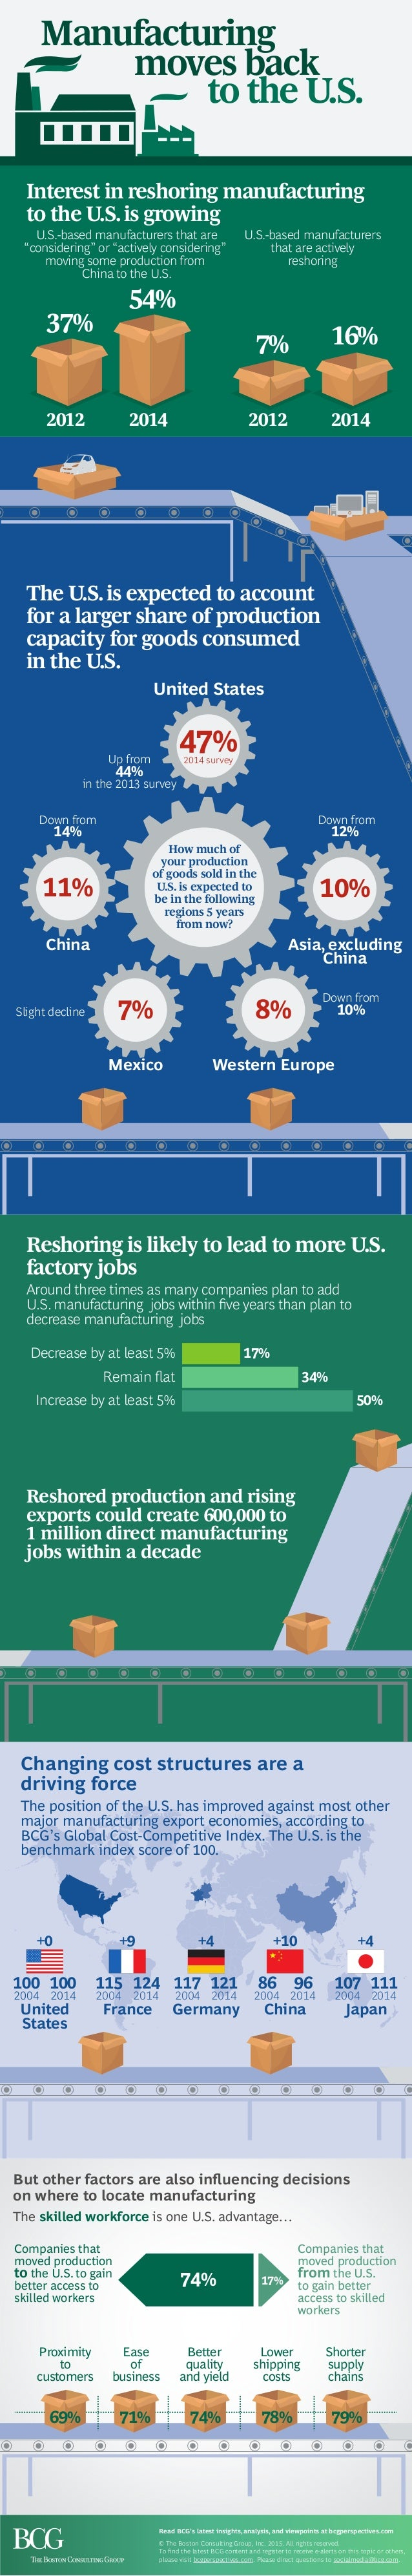 Manufacturing moves back to the U.S. Interest in reshoring manufacturing to the U.S.is growing The U.S.is expected to acco...